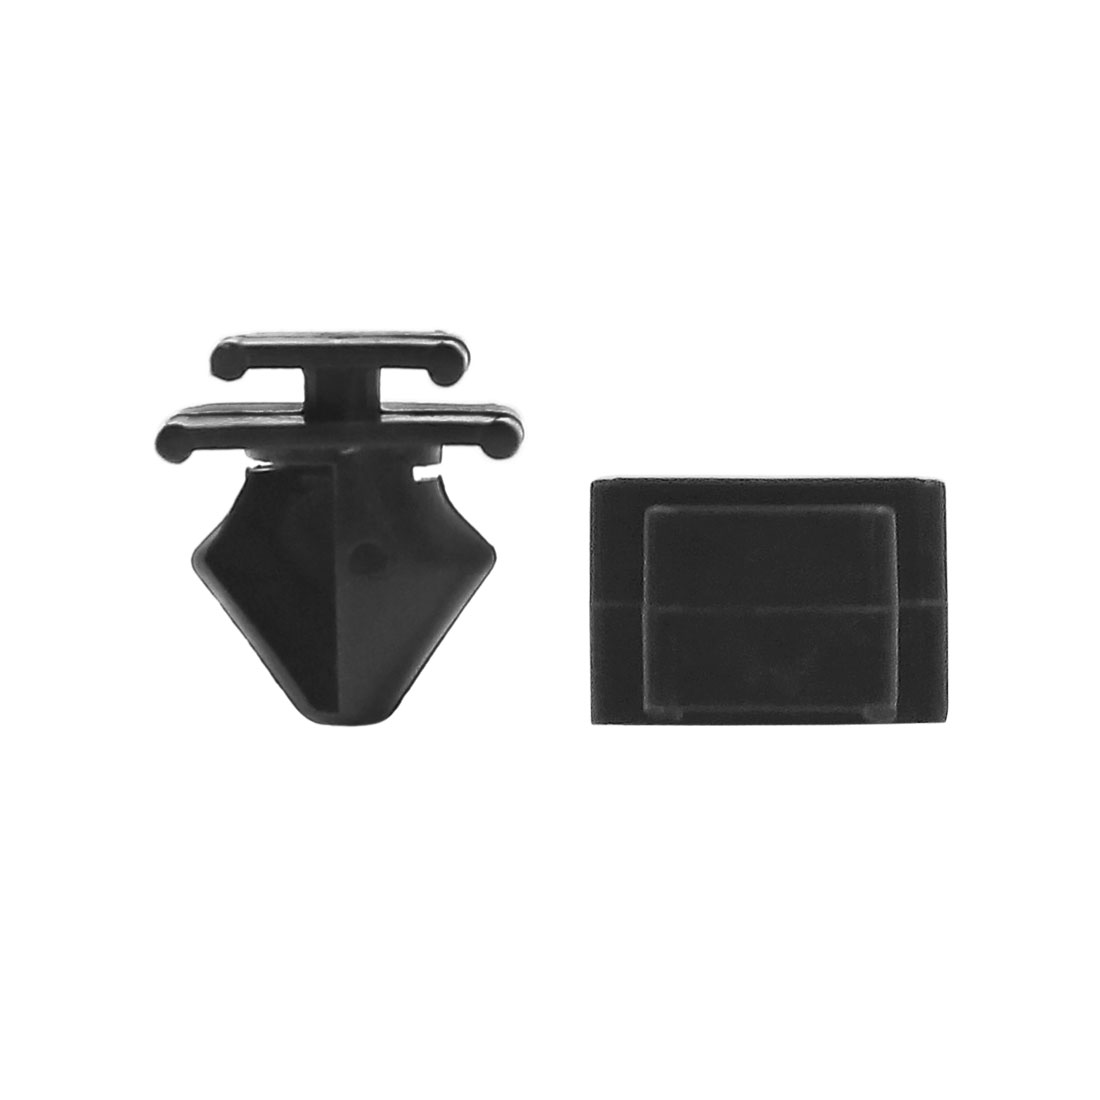 100pcs 12mm Hole Plastic Door Fender Bumper Push Rivets Clip Black for Car